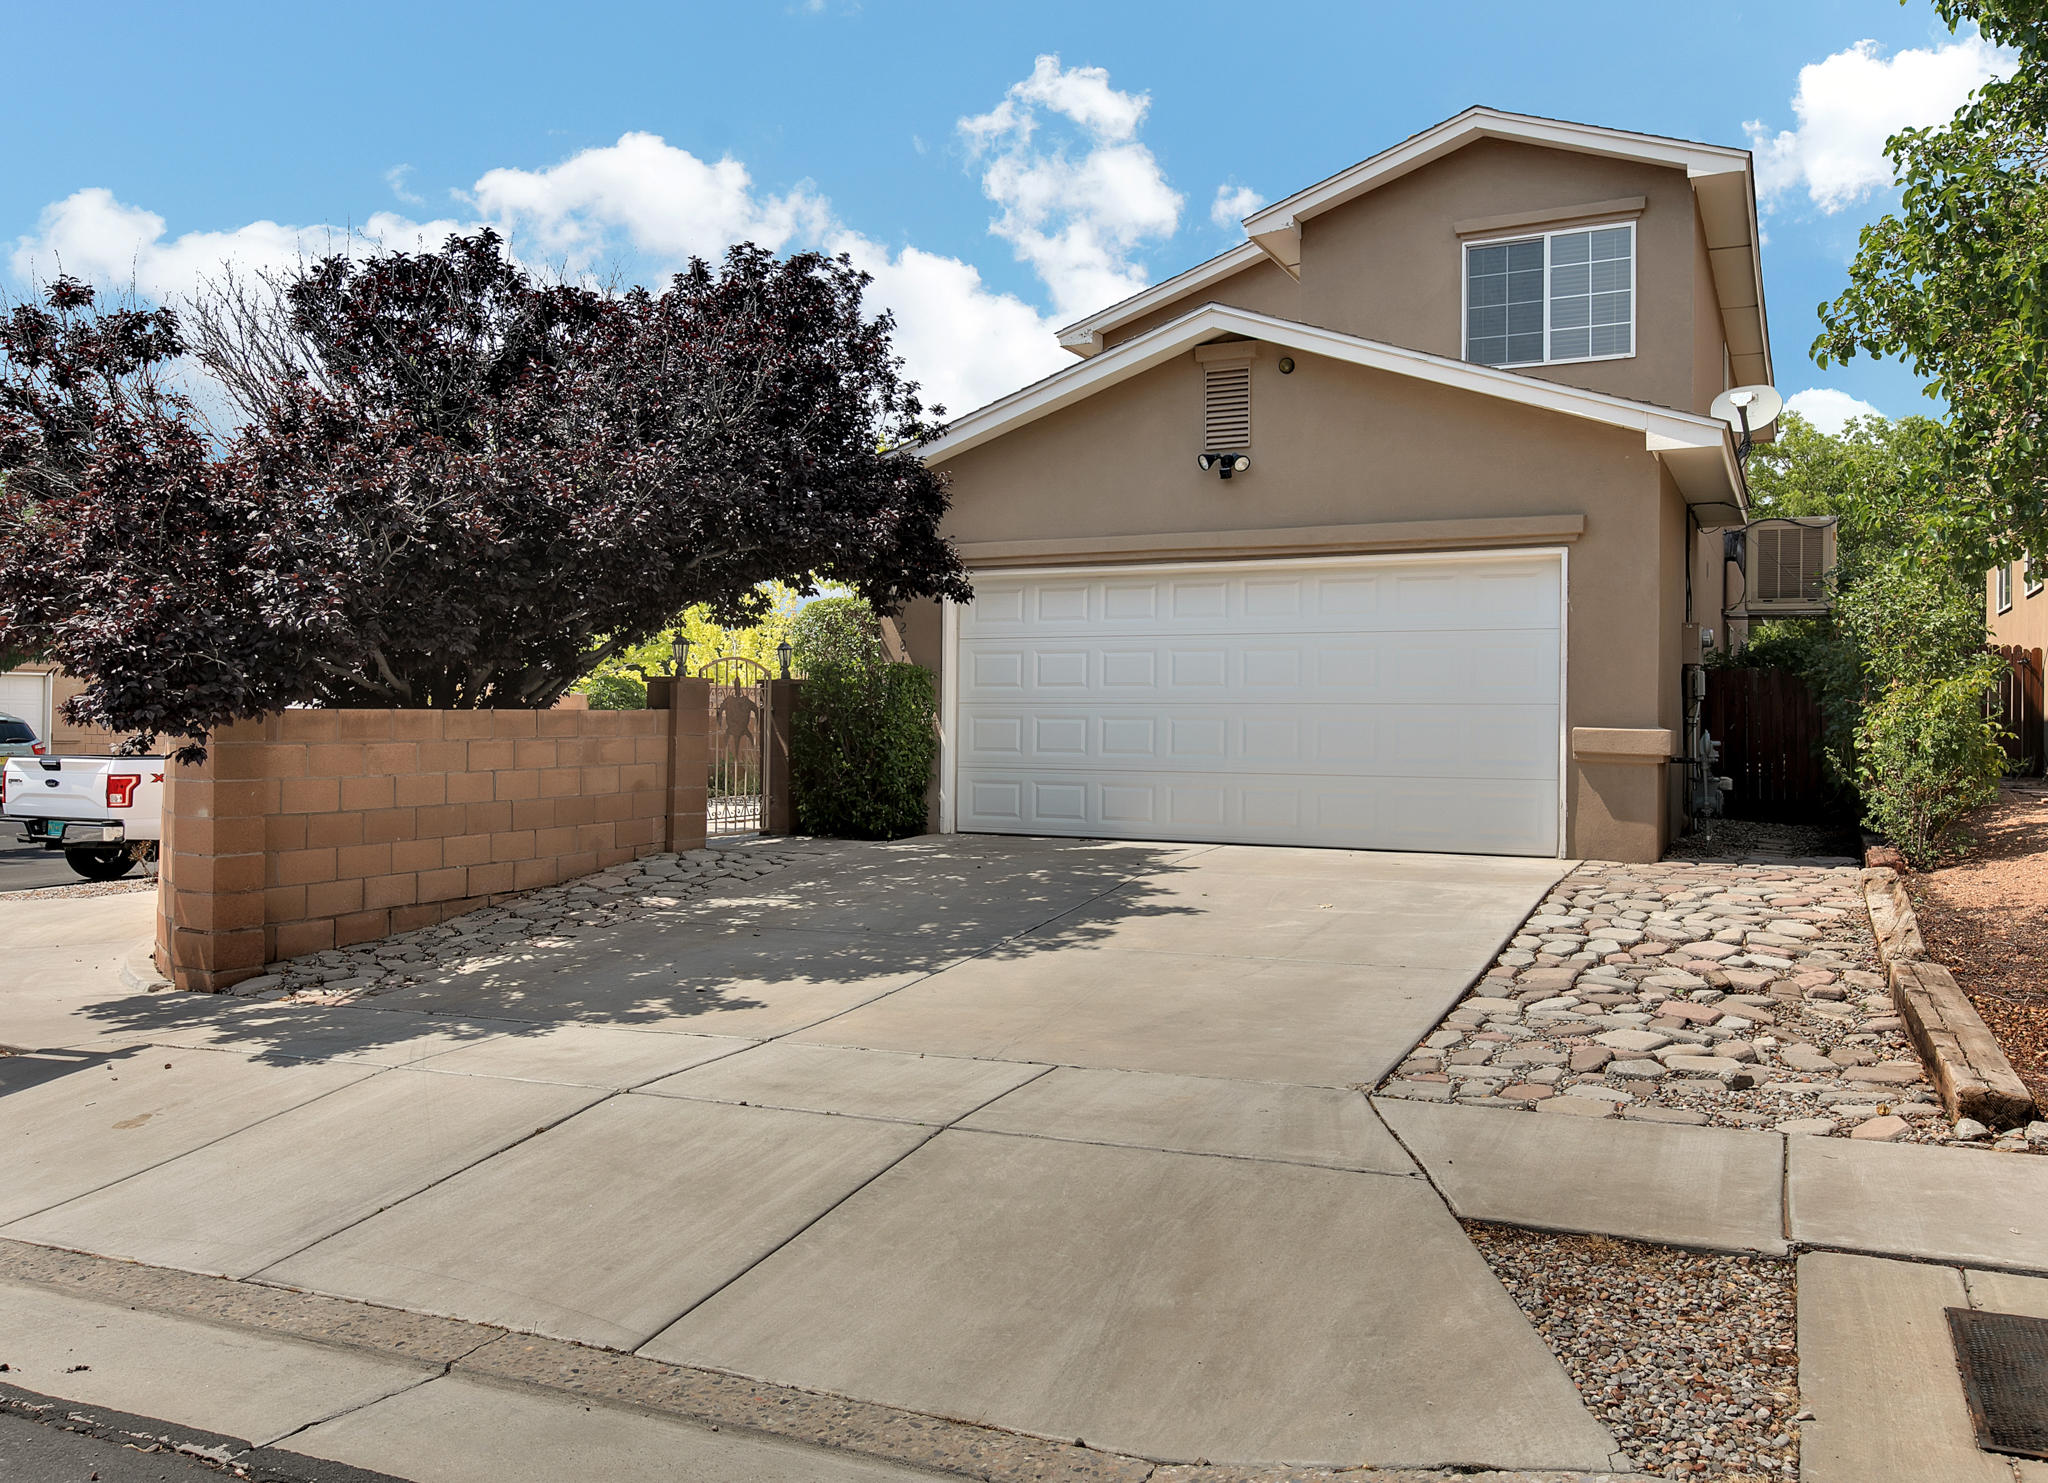 4 Bedrooms + Bonus Room in La Cueva School District.  Built by Joe Boyden, you are greeted by a large, open great room that extends to the dining space & kitchen.  1 bedroom on the main level + heated & cooled bonus space.  Corner lot as 2 accesses to the courtyard.  Master bedroom is located upstairs and has cathedral ceilings, walk-in closet & large master bathroom with jetted tub, separate shower & double sinks. The kitchen has a breakfast bar, double oven, plenty of counterspace & convenient access to the half bathroom. Located with easy access to Paseo, I-25, restaurants, grocery shopping & excellent schools.  Schedule your private showing with a Realtor today!